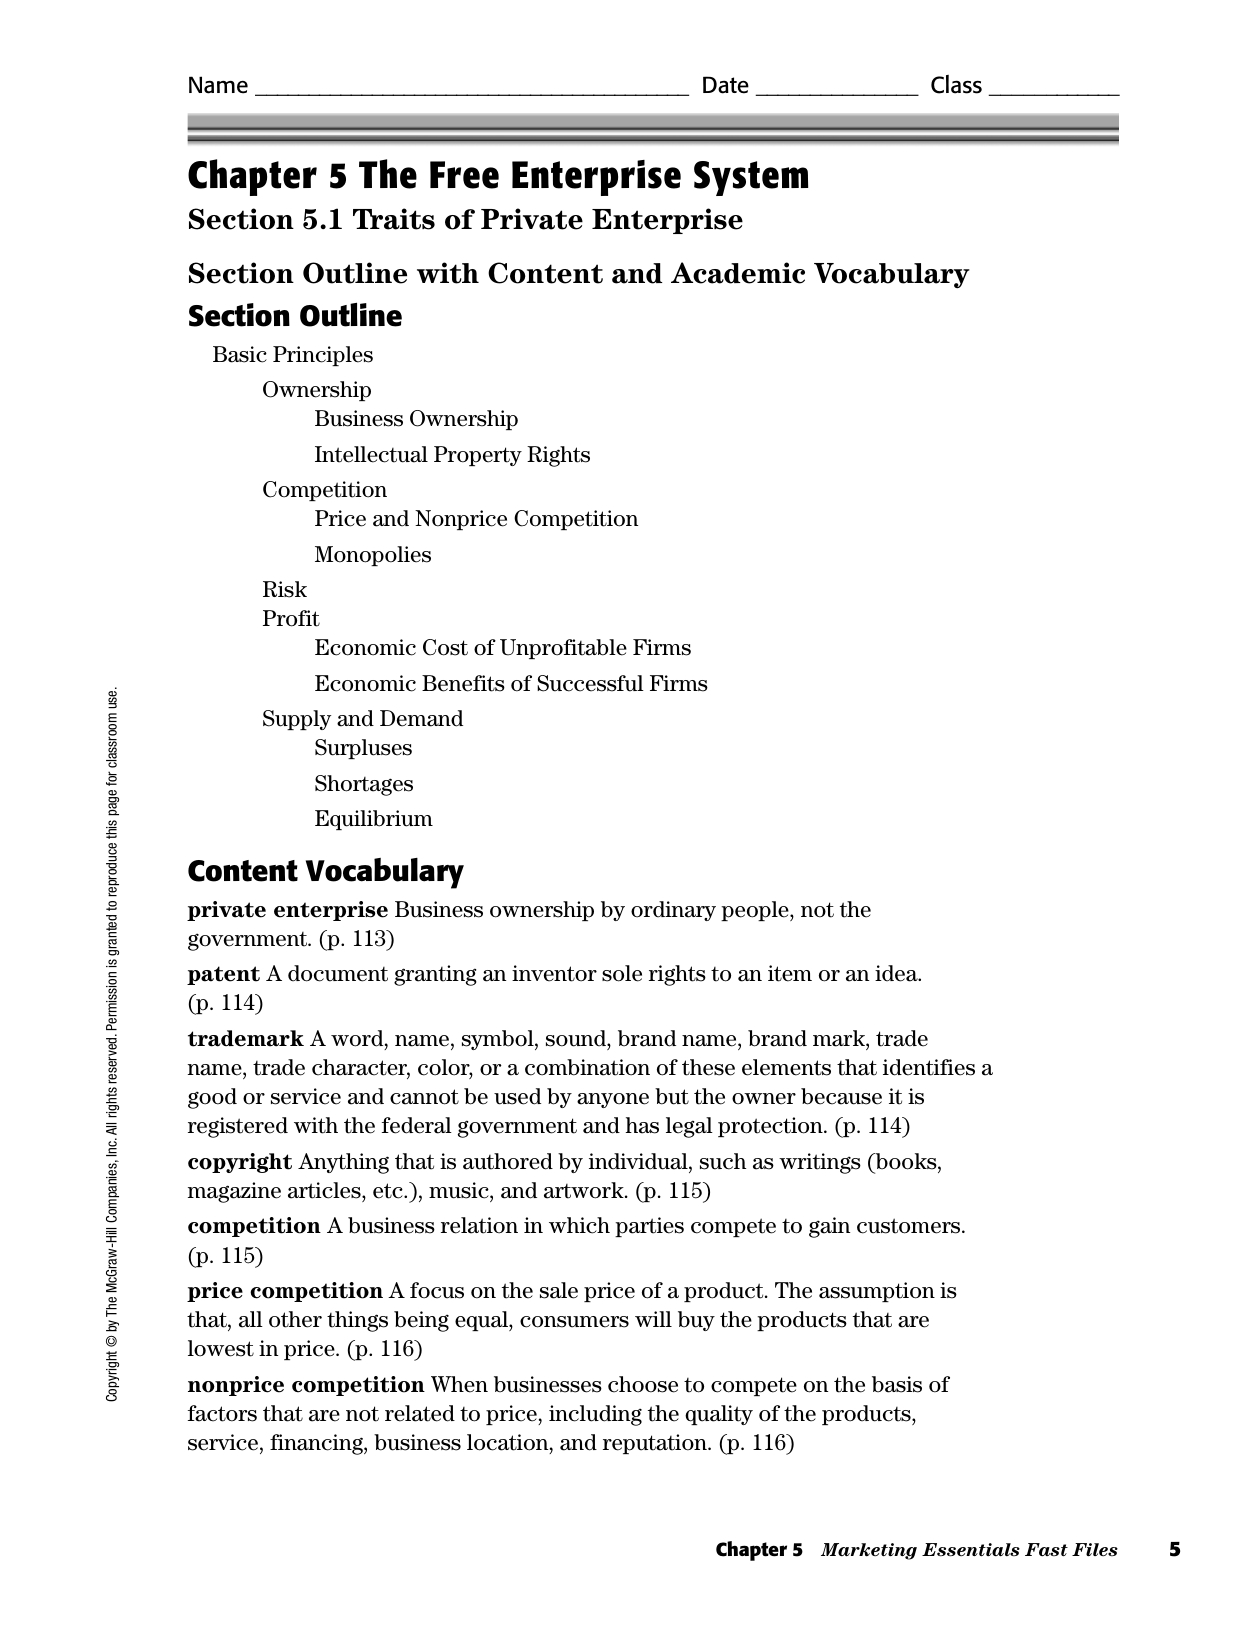 Chapter 5 Supply Economics Worksheet Answers